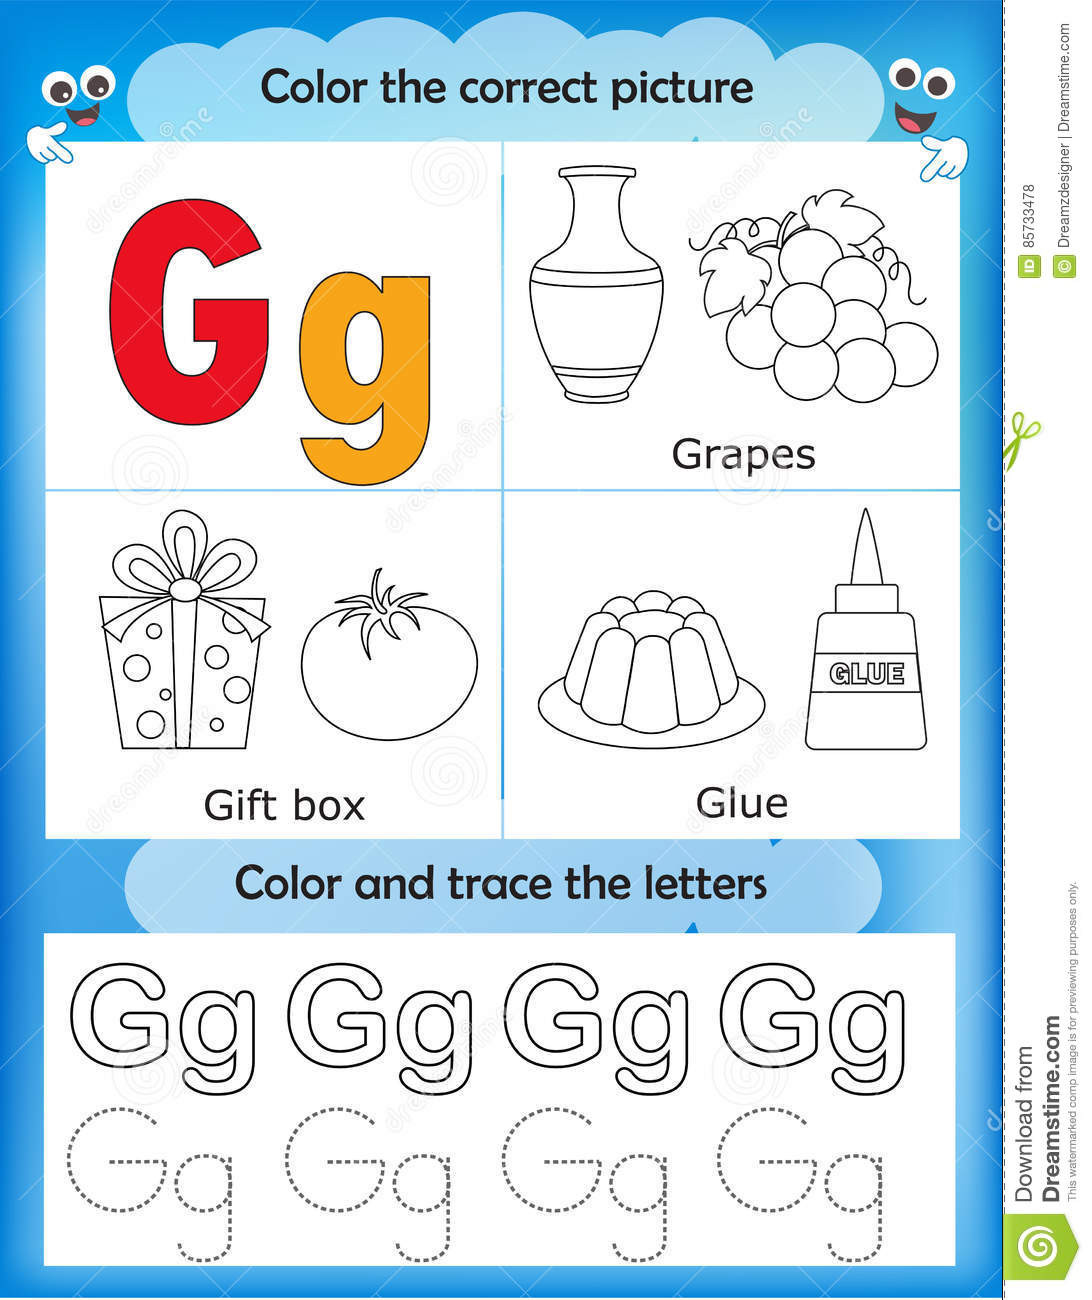 Letter G Worksheets Preschool Alphabet Learning and Color Letter G Stock Illustration